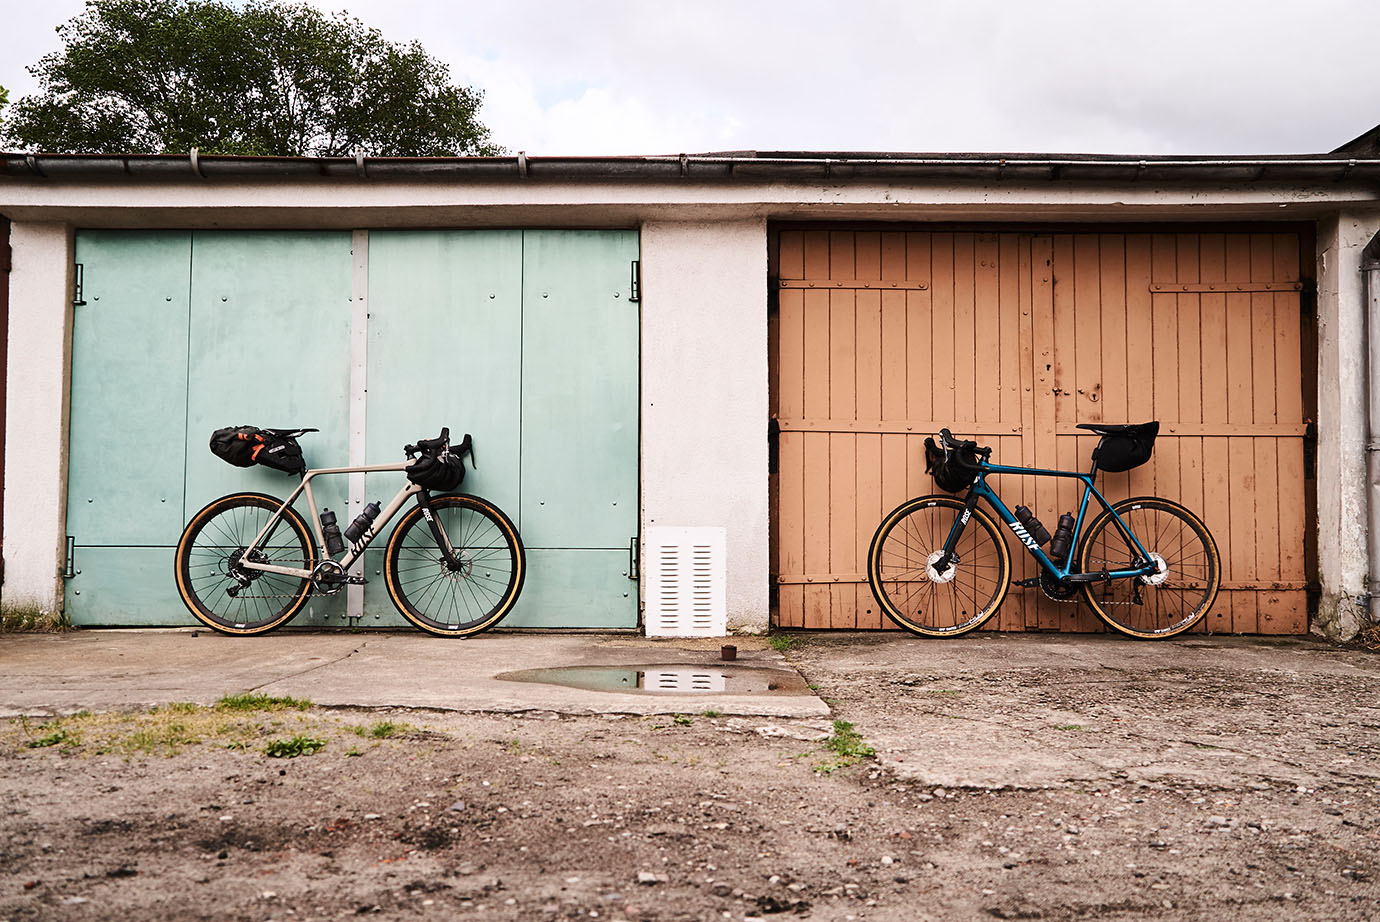 Rose takes the Backroad to gravel & unpaved adventures by bike